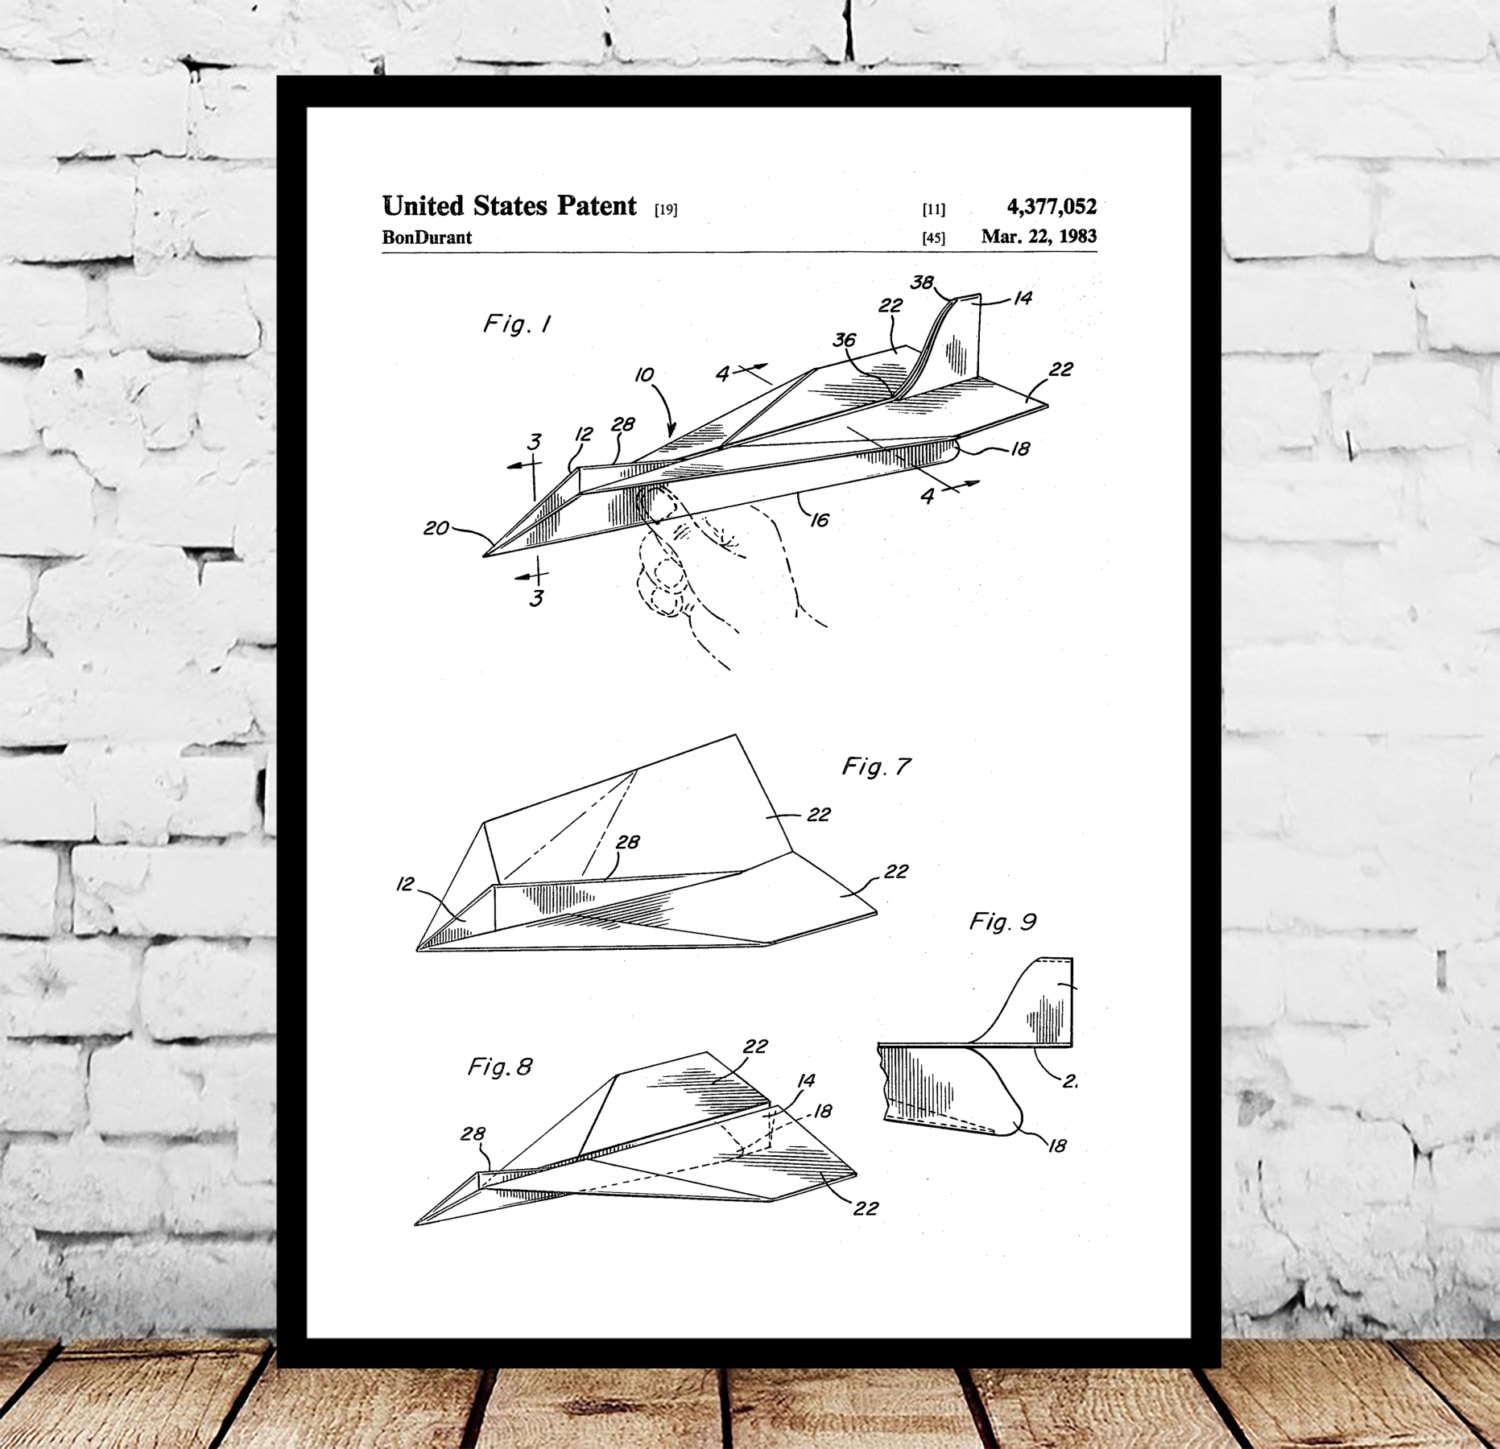 Paper airplane patent paper airplane poster paper airplane print paper airplane patent paper airplane poster paper airplane print paper airplane art paper airplane decor paper airplane blueprint malvernweather Gallery